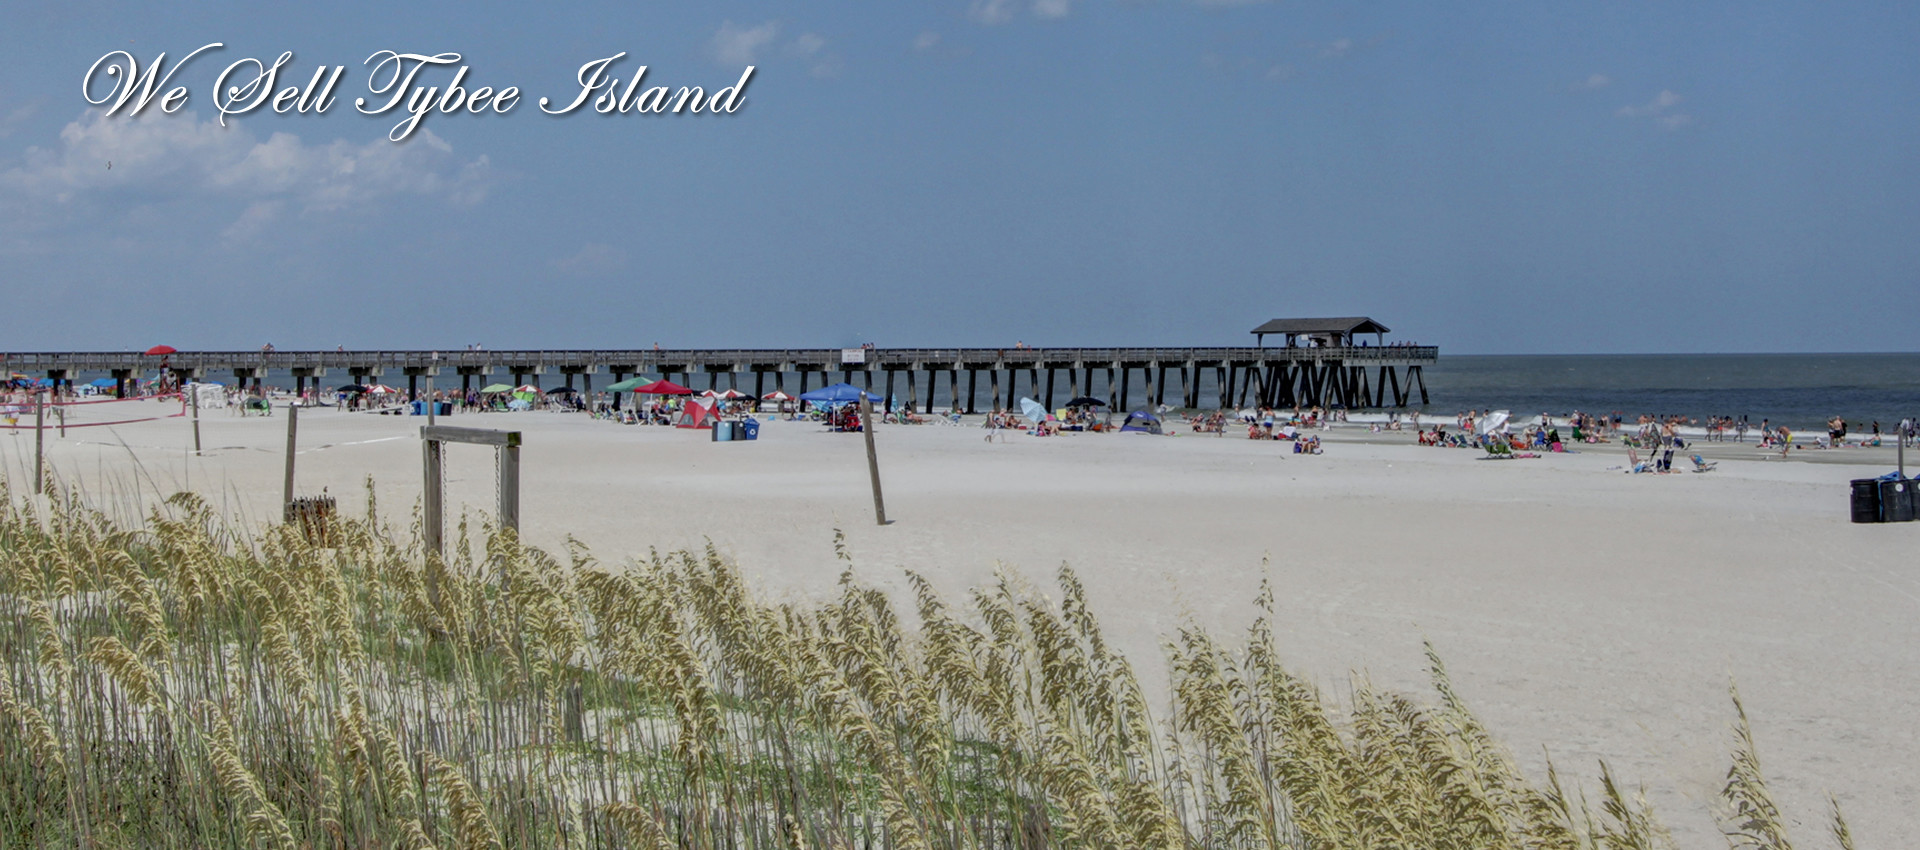 00-mopper-kelly-savannah-tybee-island